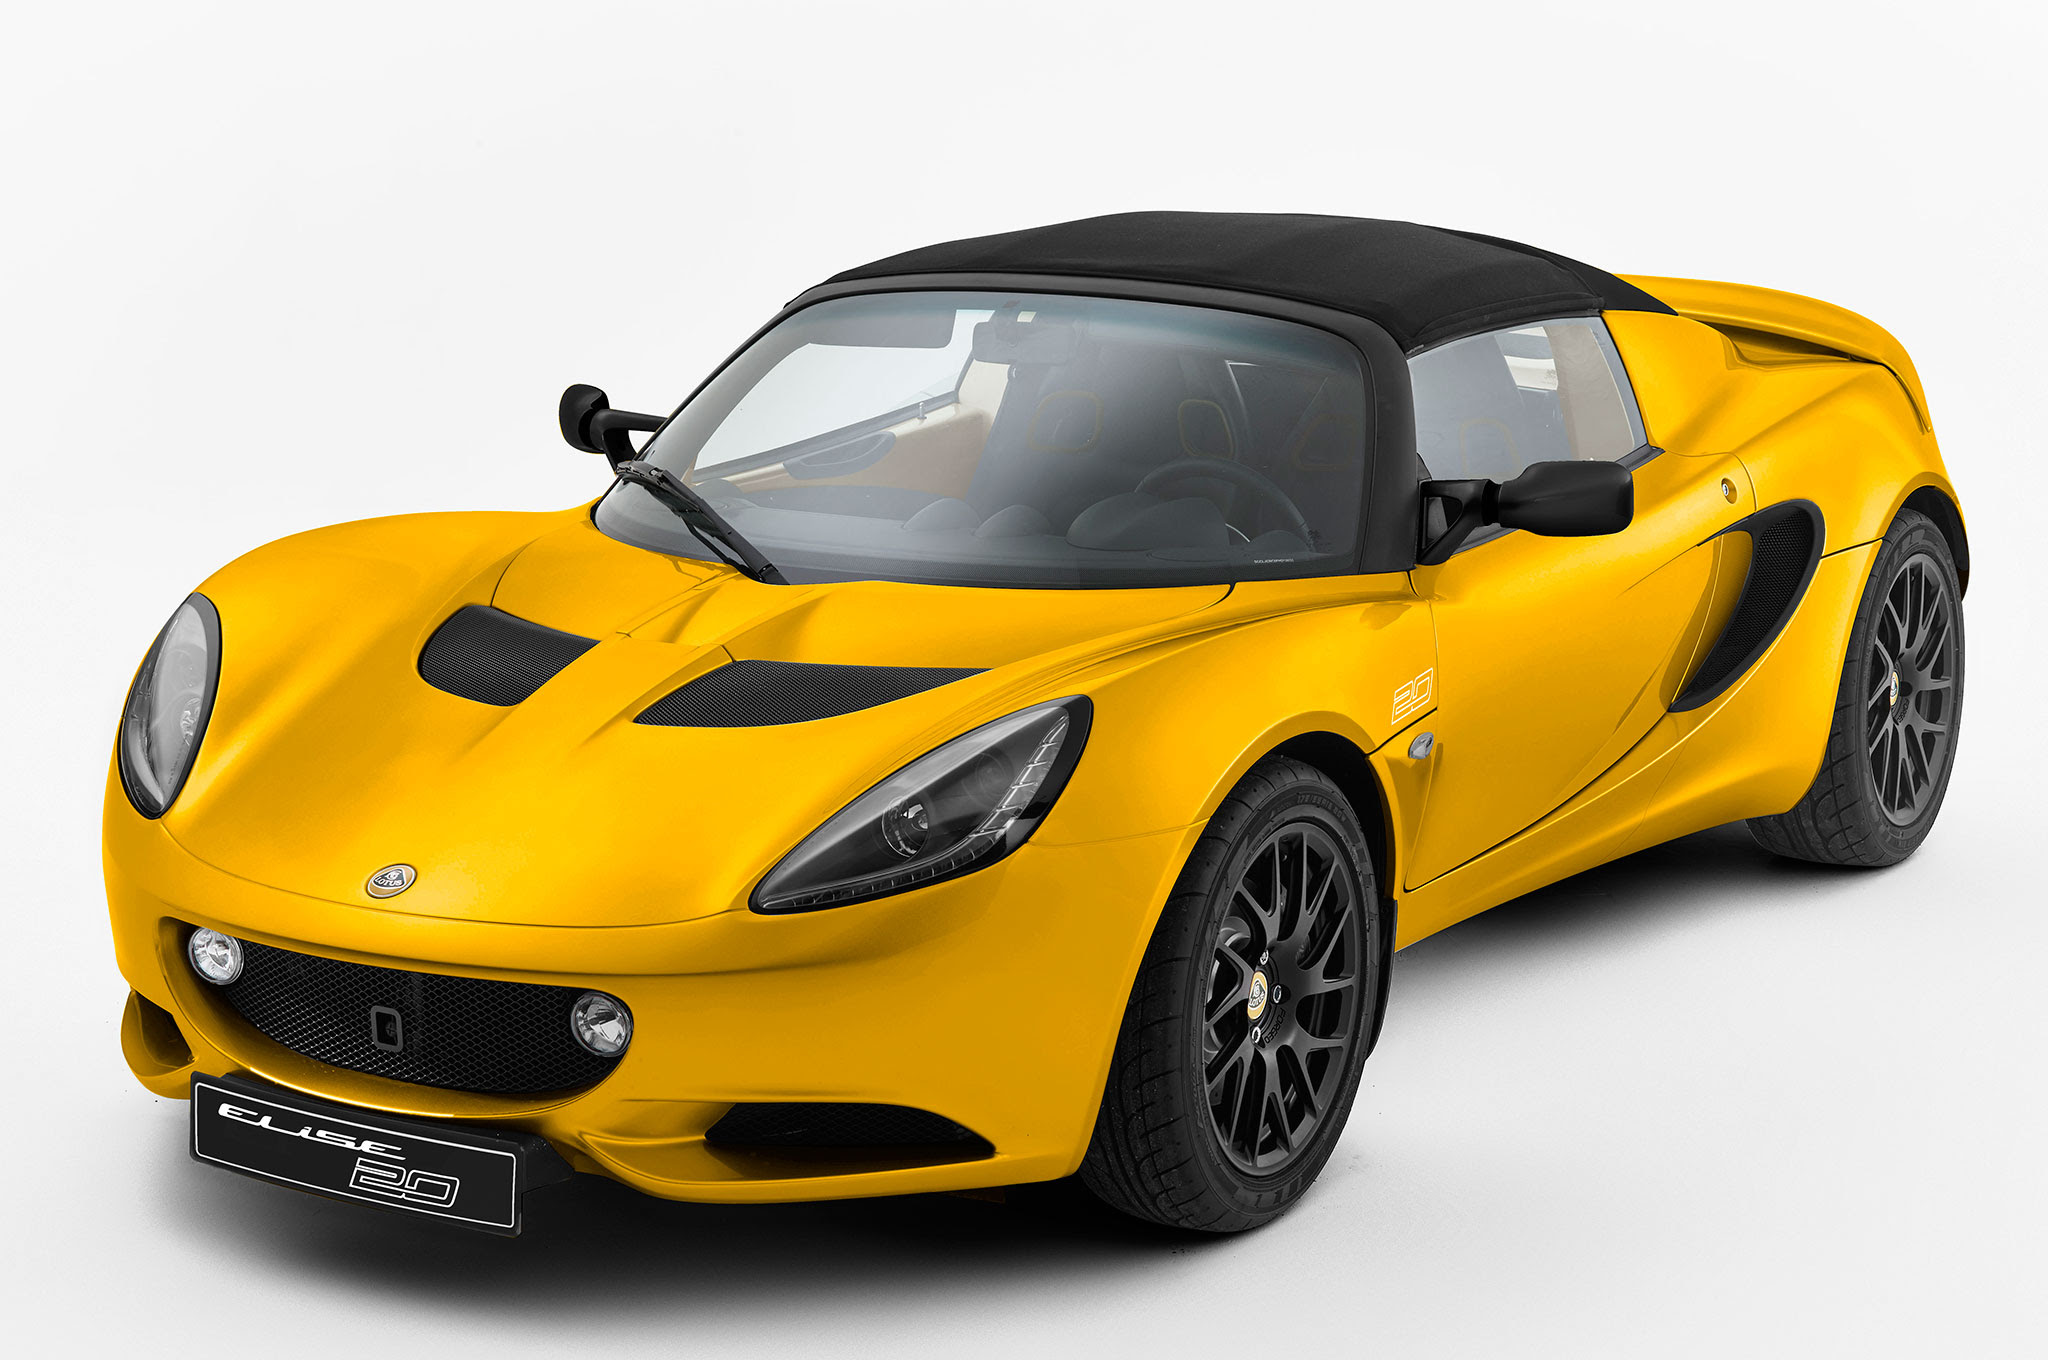 Lotus Elise 20th Anniversary Edition Unveiled Images, Photos, Reviews